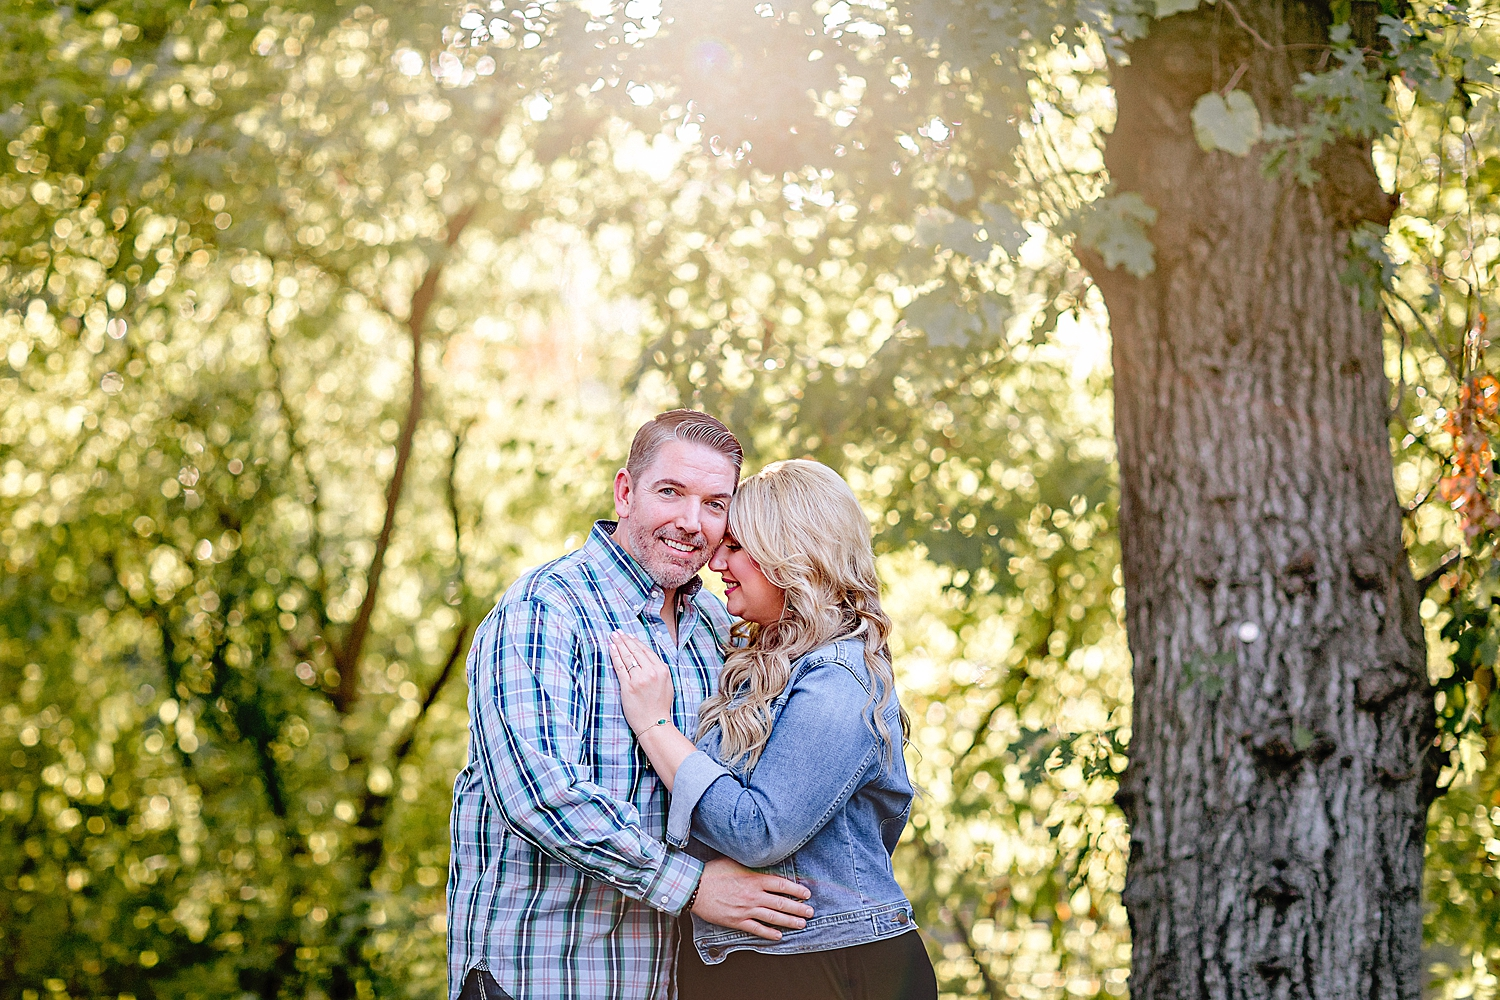 Engagement-Photo-Session-University-of-Incarnate-Word-UIW-San-Antonio-Texas-Carly-Barton-Photography_0015.jpg